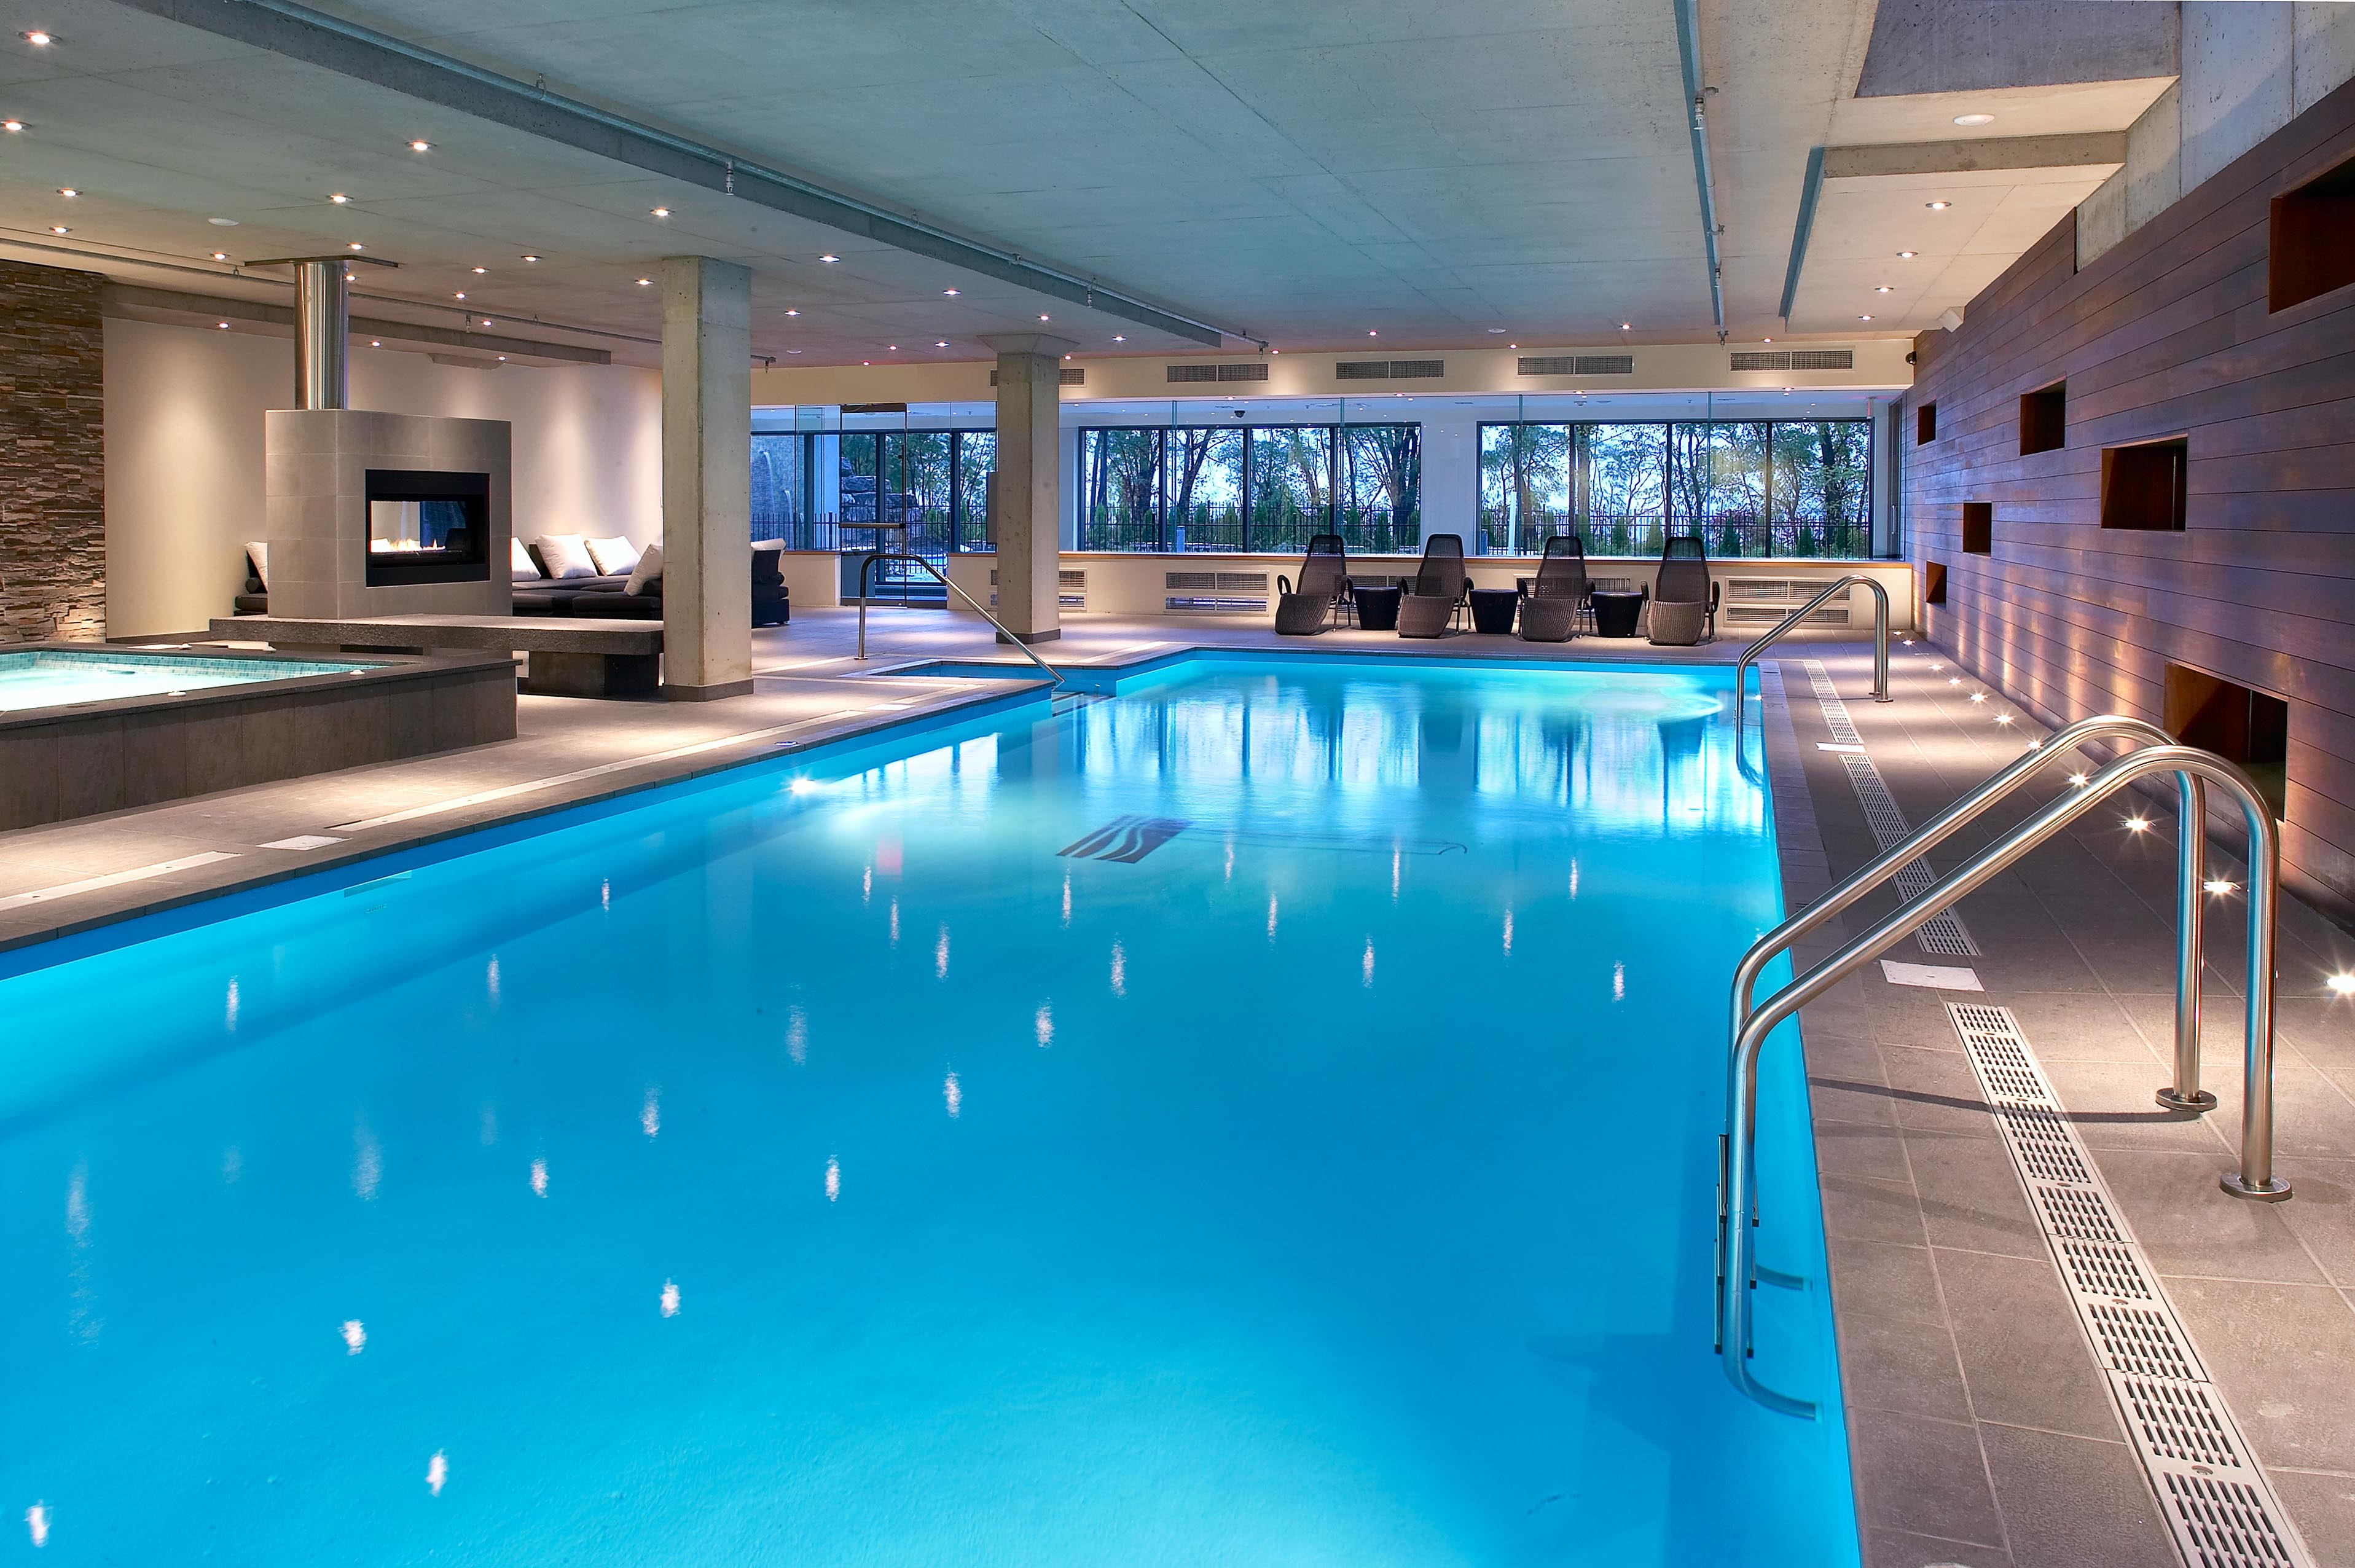 Le vistal condominium premi re tour r sidentielle for Vente piscine montreal